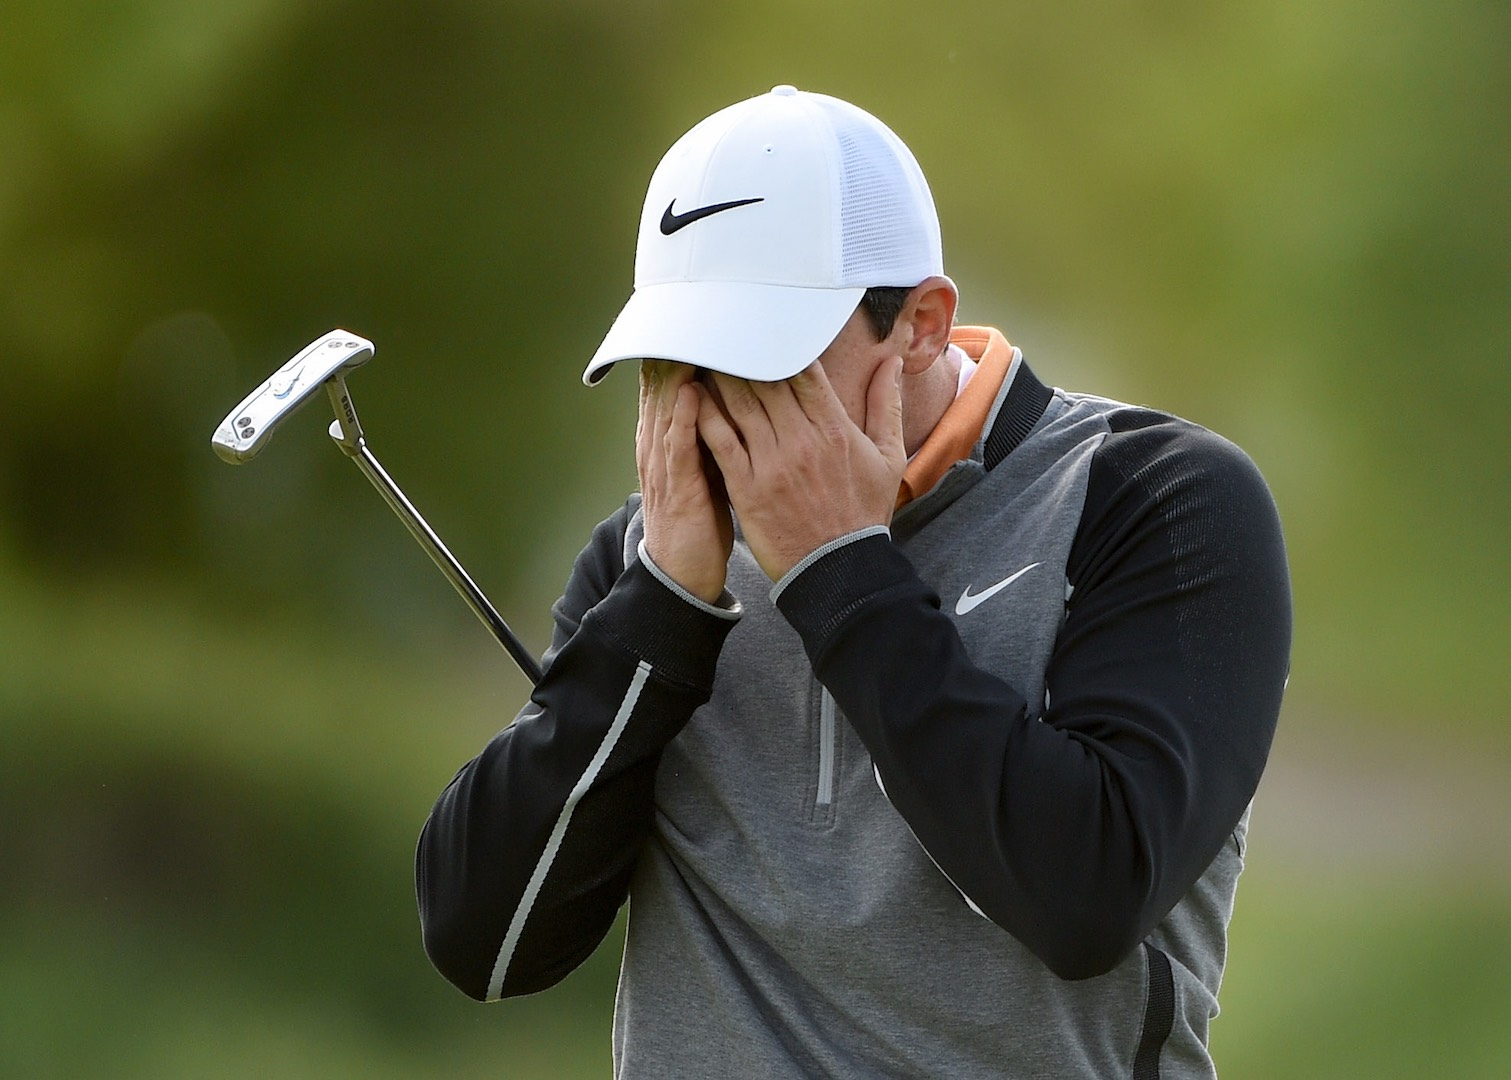 Jason Day could also pull out of Olympics